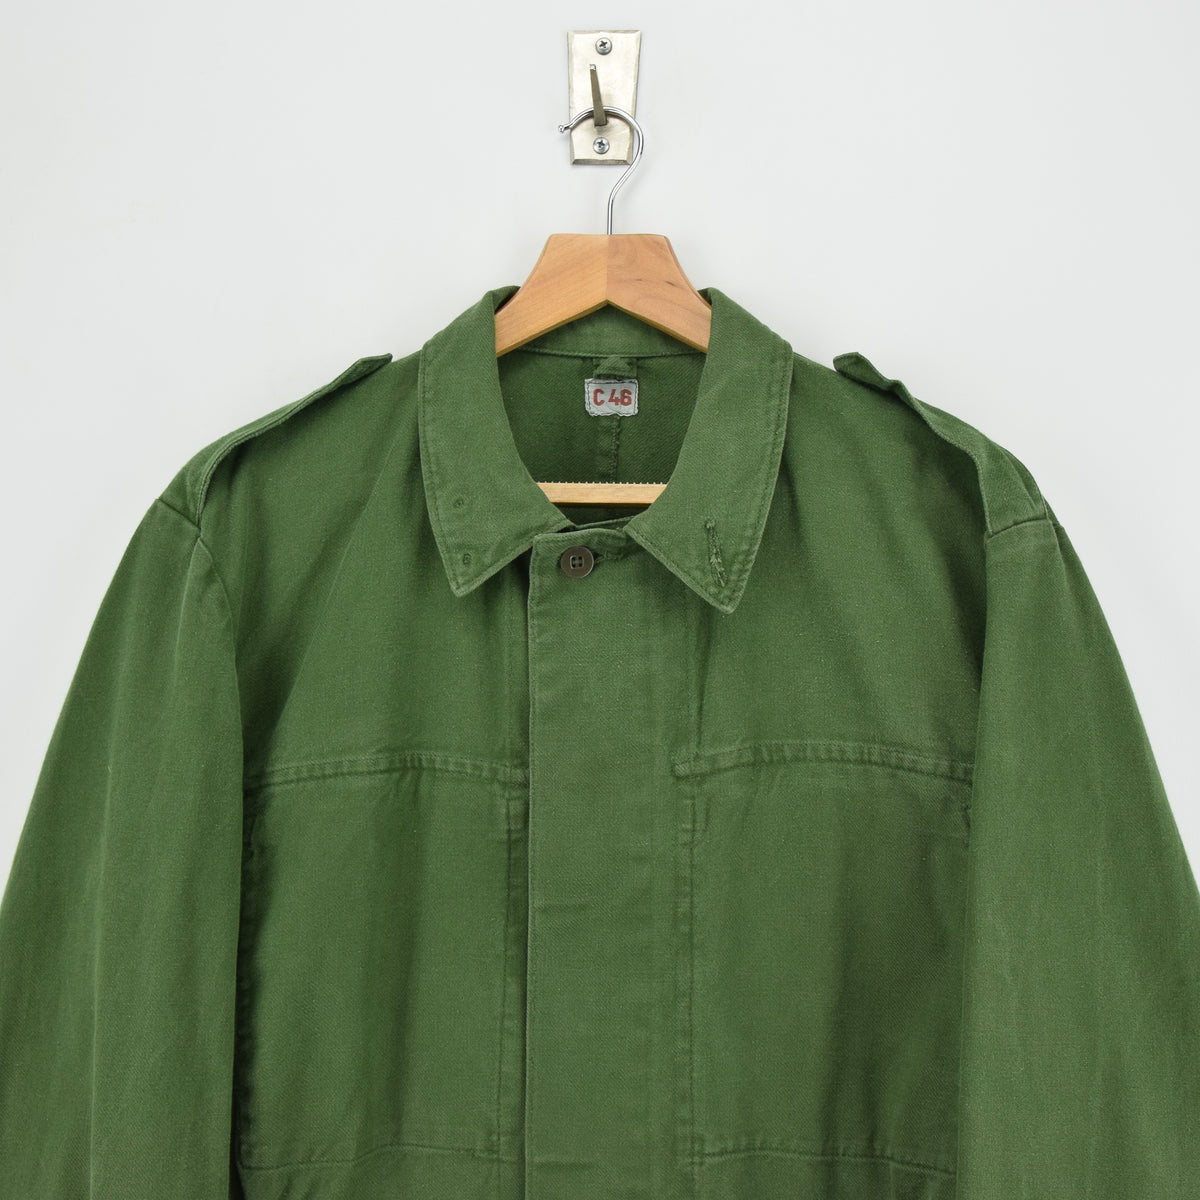 Vintage Swedish Worker Style Distressed Green Military Field Shirt Jacket M chest